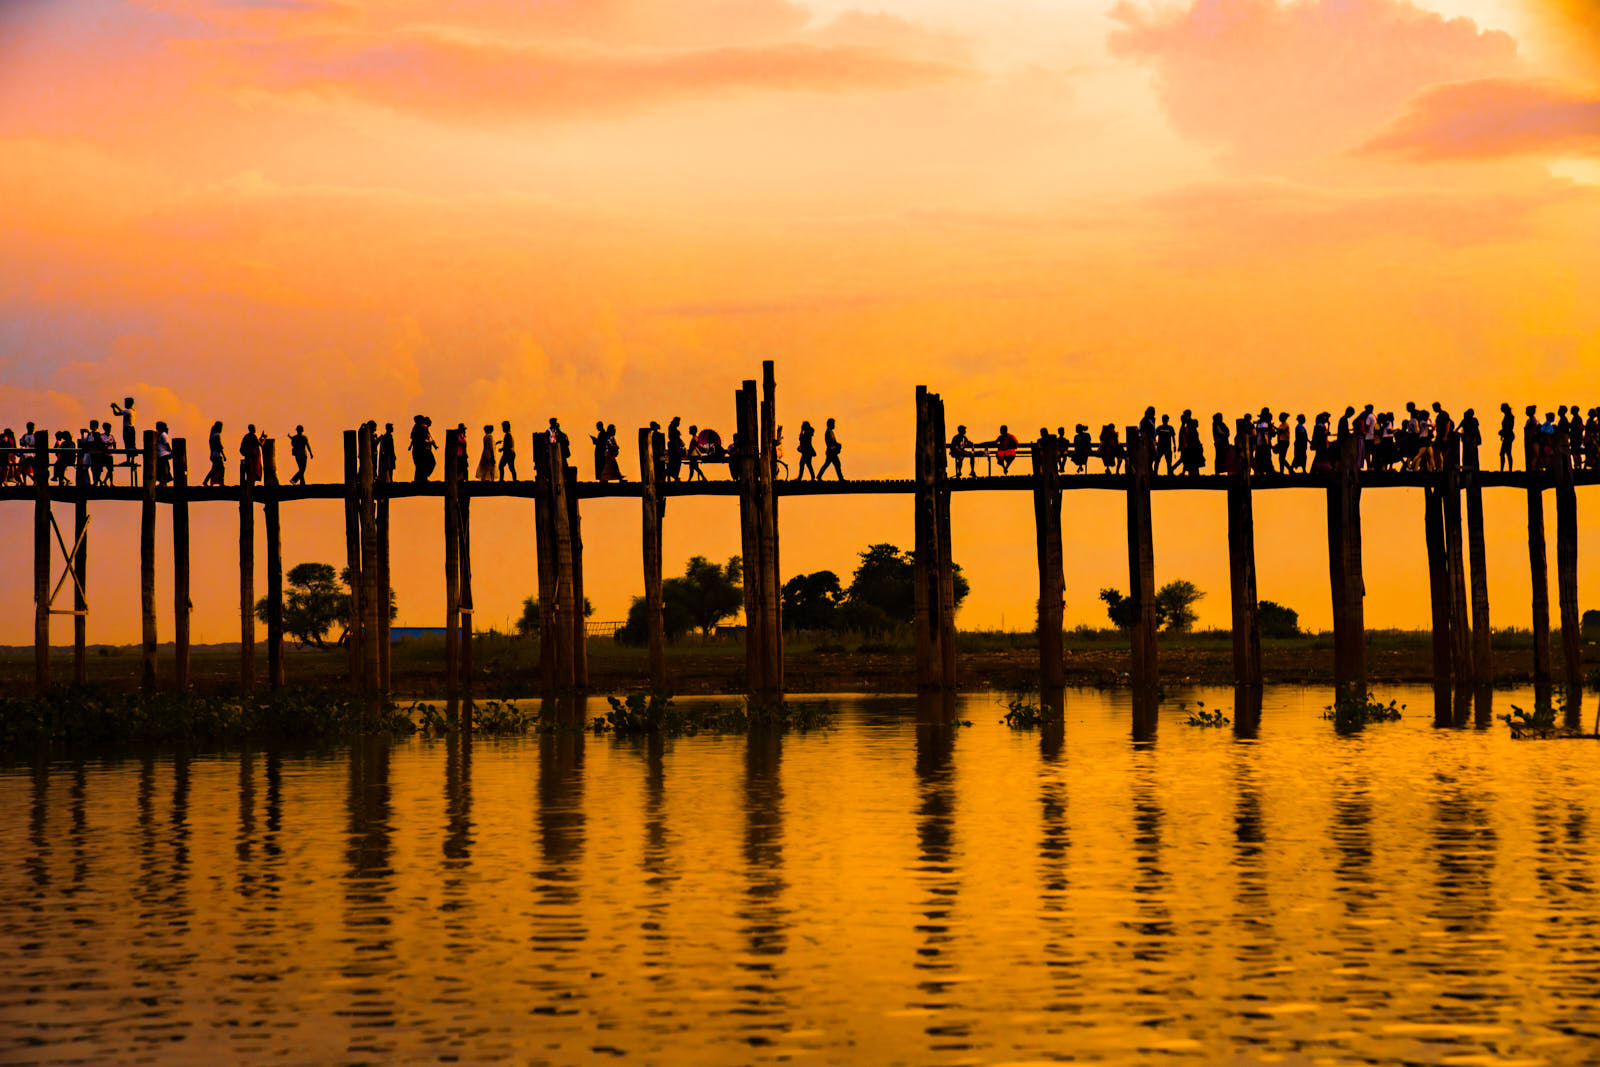 Mandalay_U_Bein_Bridge_14Oct2019_Jerusal